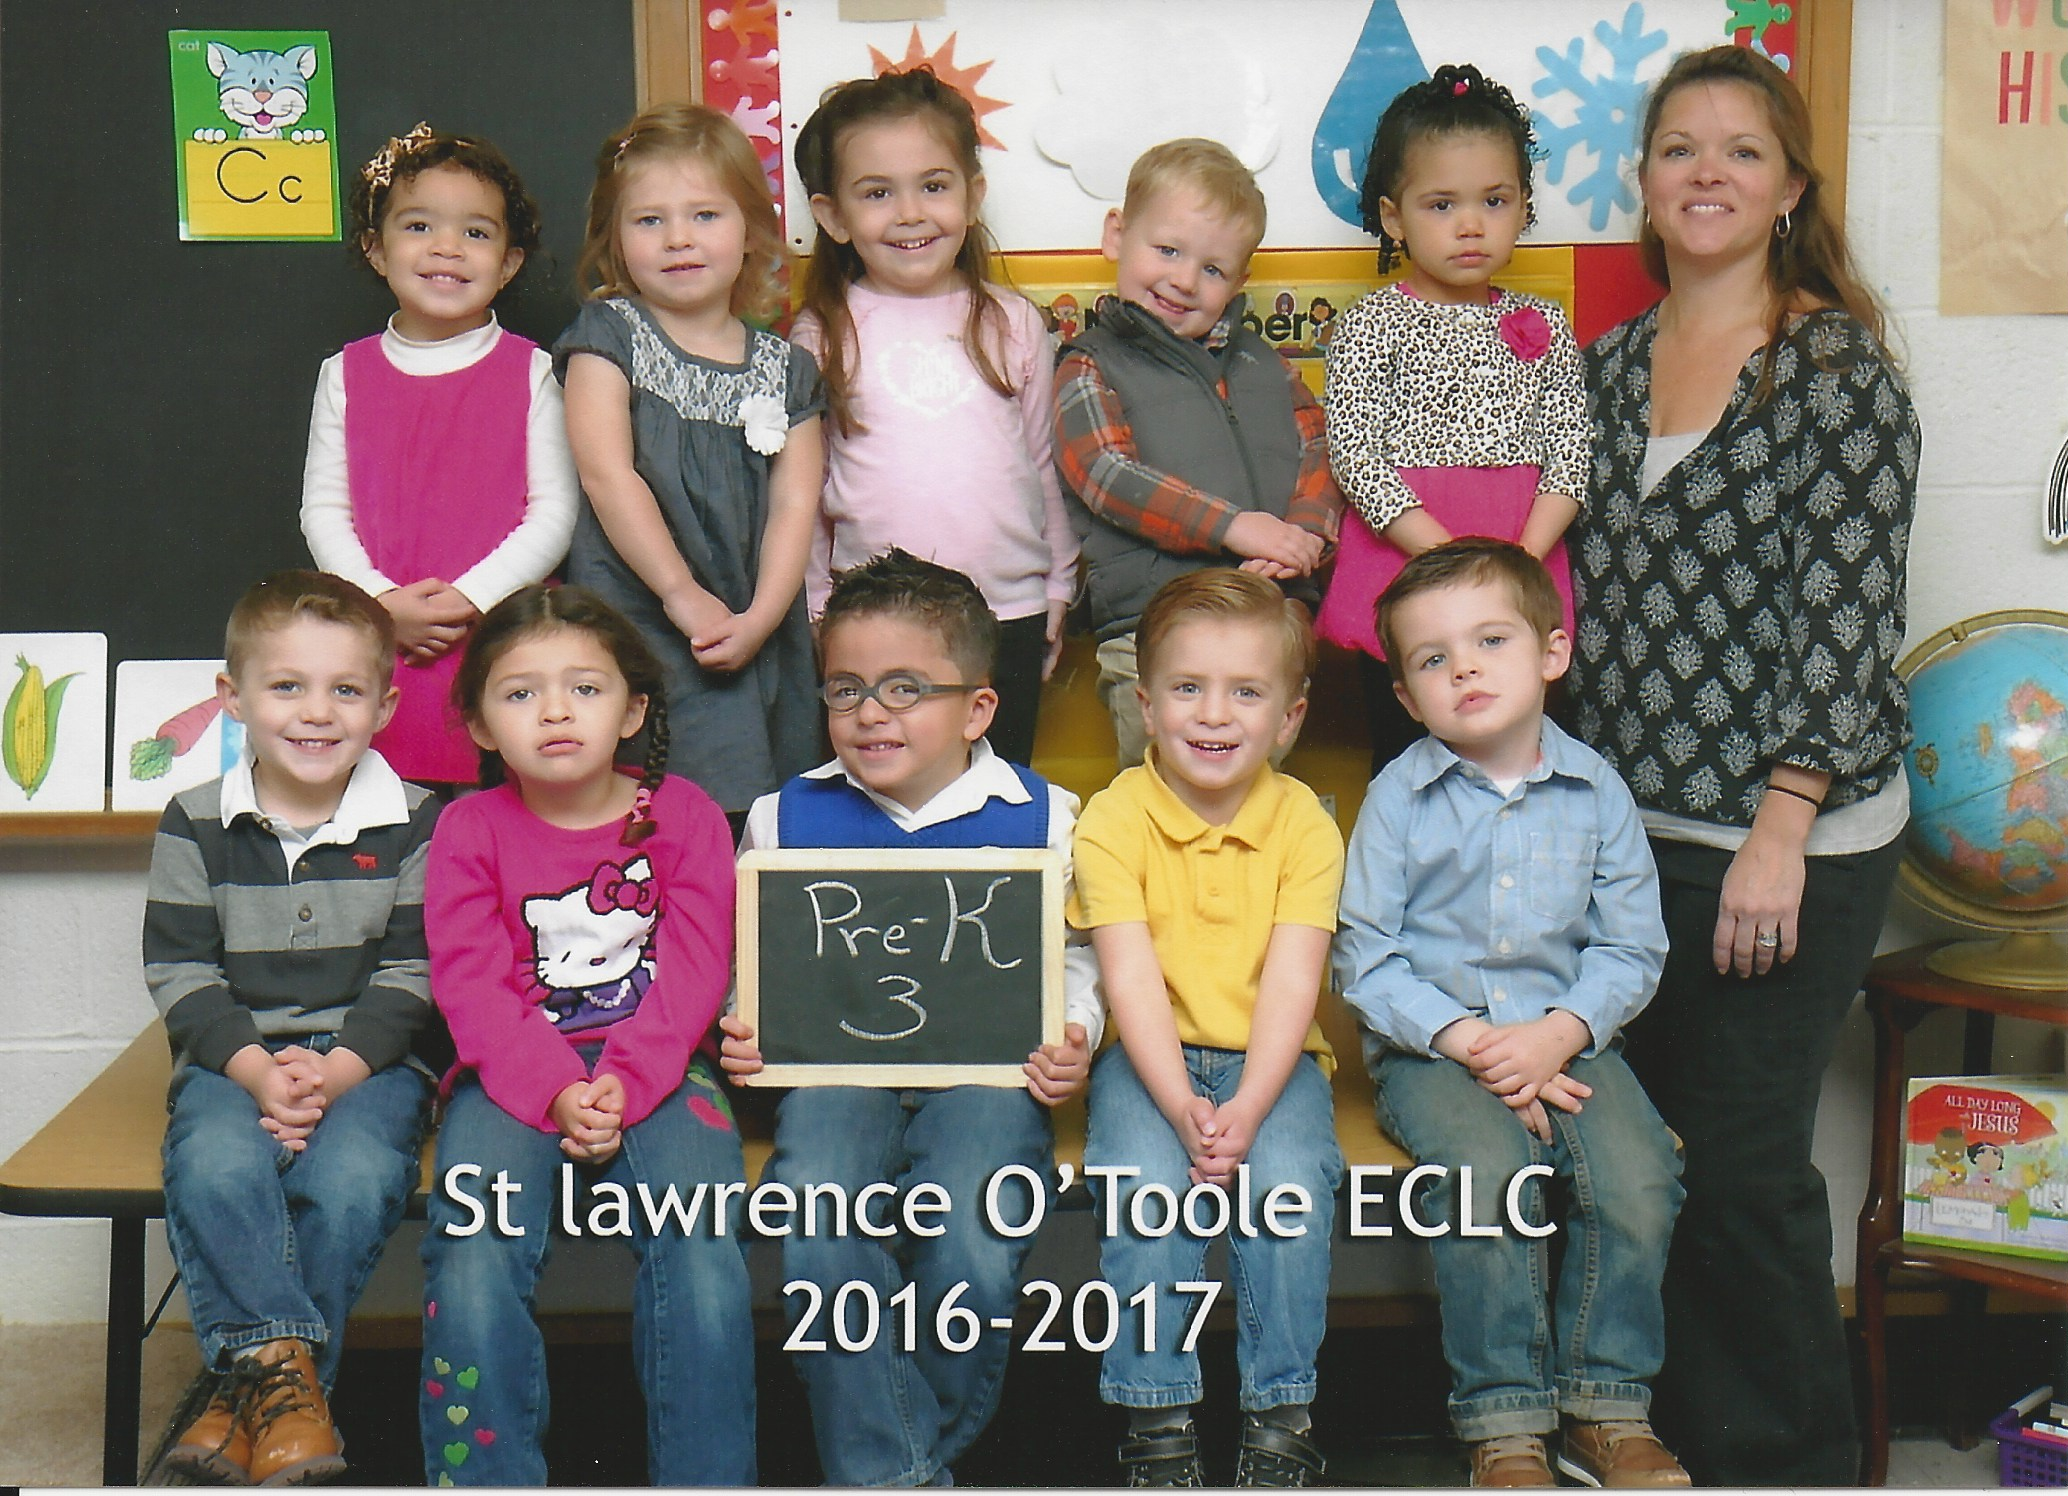 St Lawrence Otoole Church Pre K 3